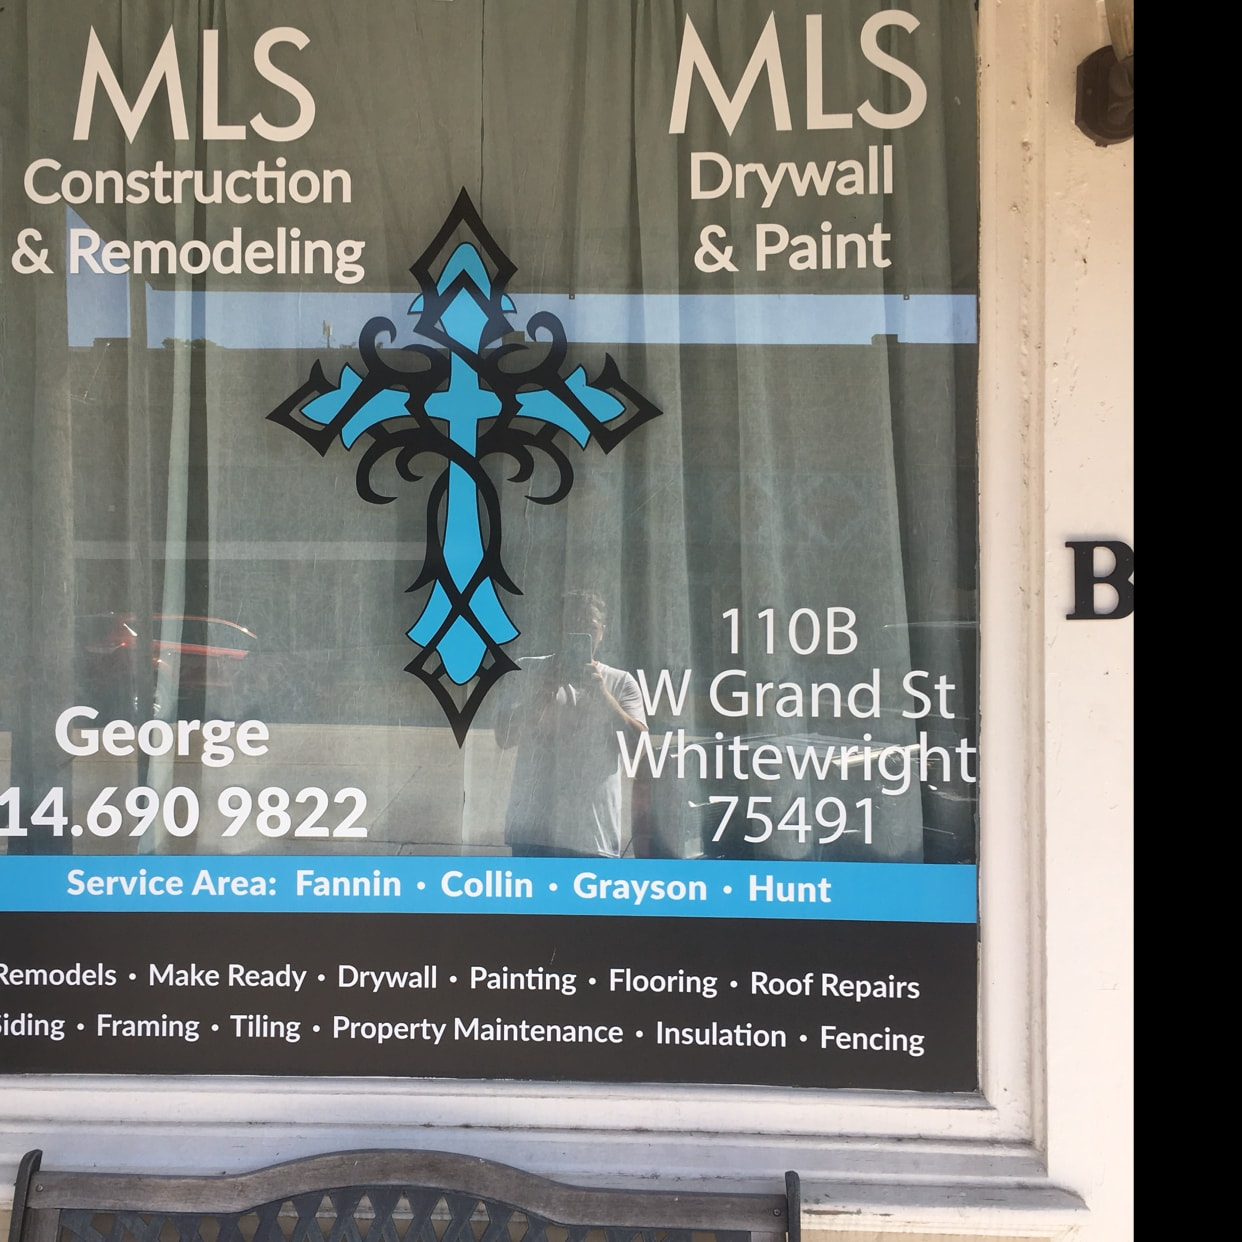 MLS Restoration and Remodeling, LLC